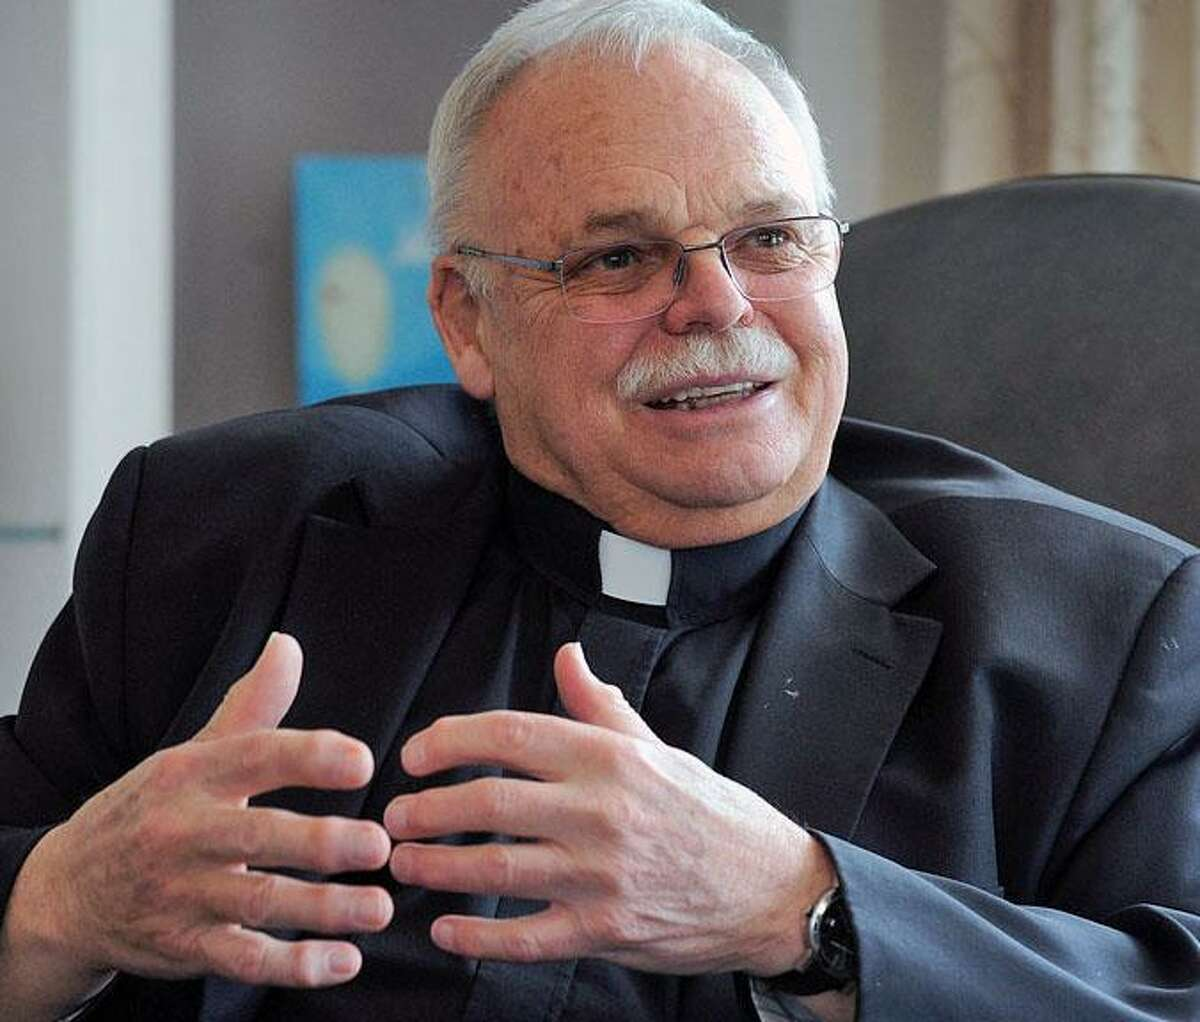 Monsignor Robert Weiss, pastor of St. Rose of Lima Church in Newtown